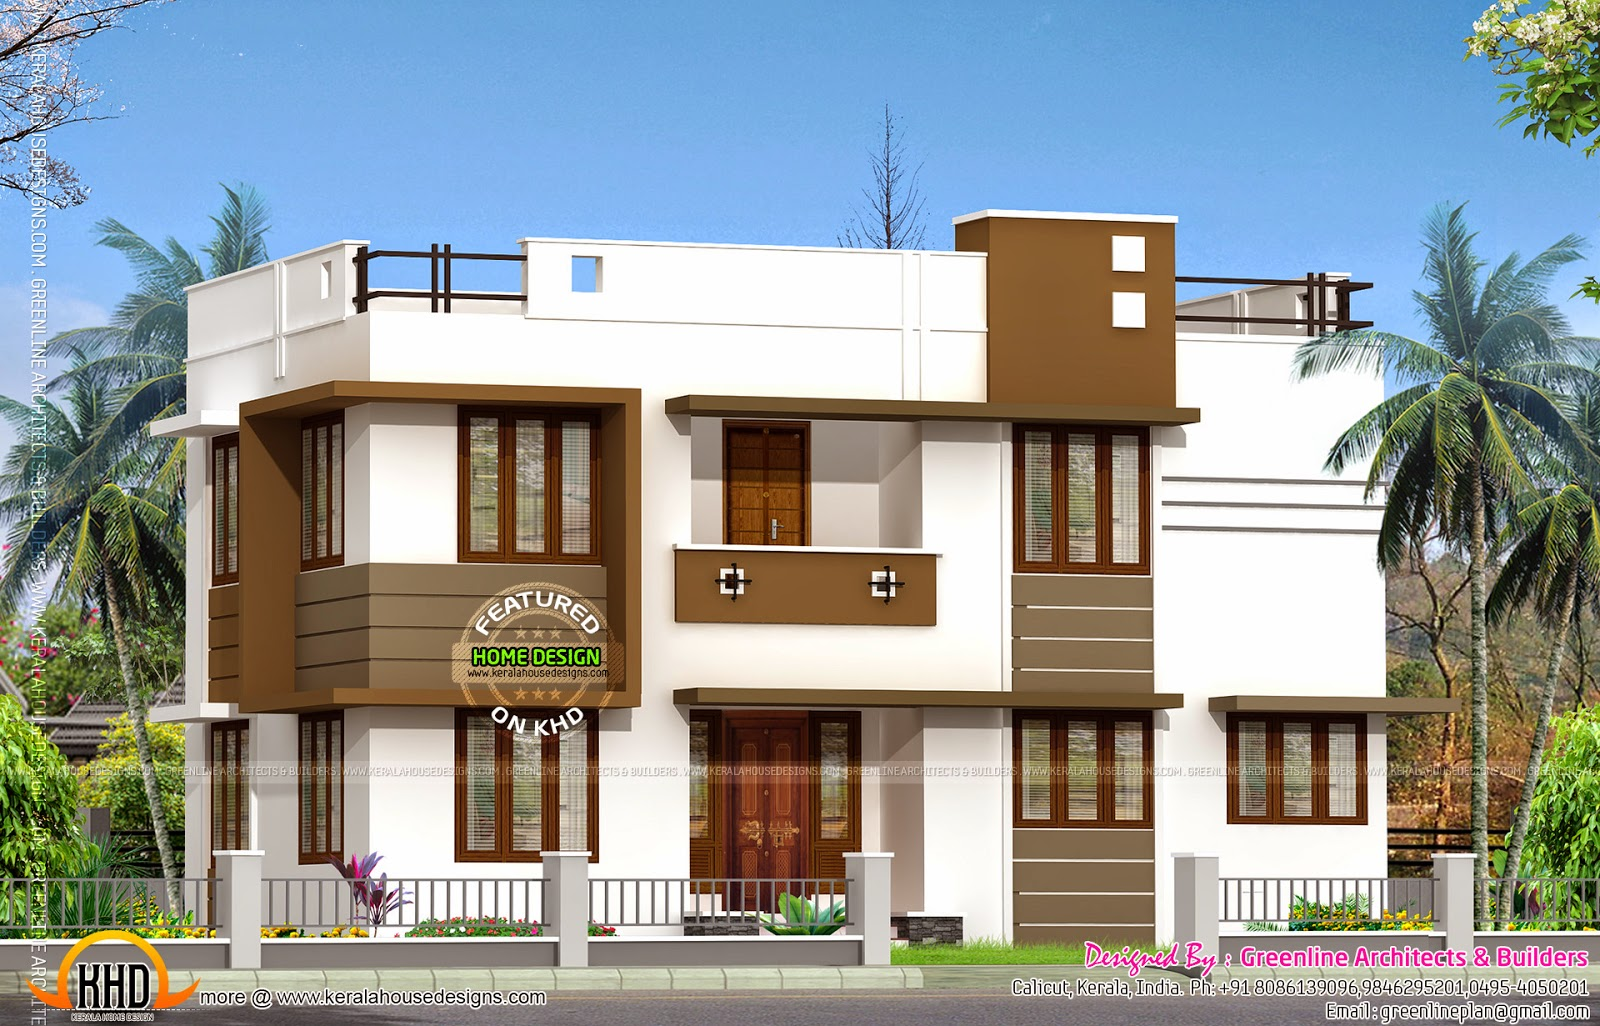 Low budget double storied house - Kerala home design and ...